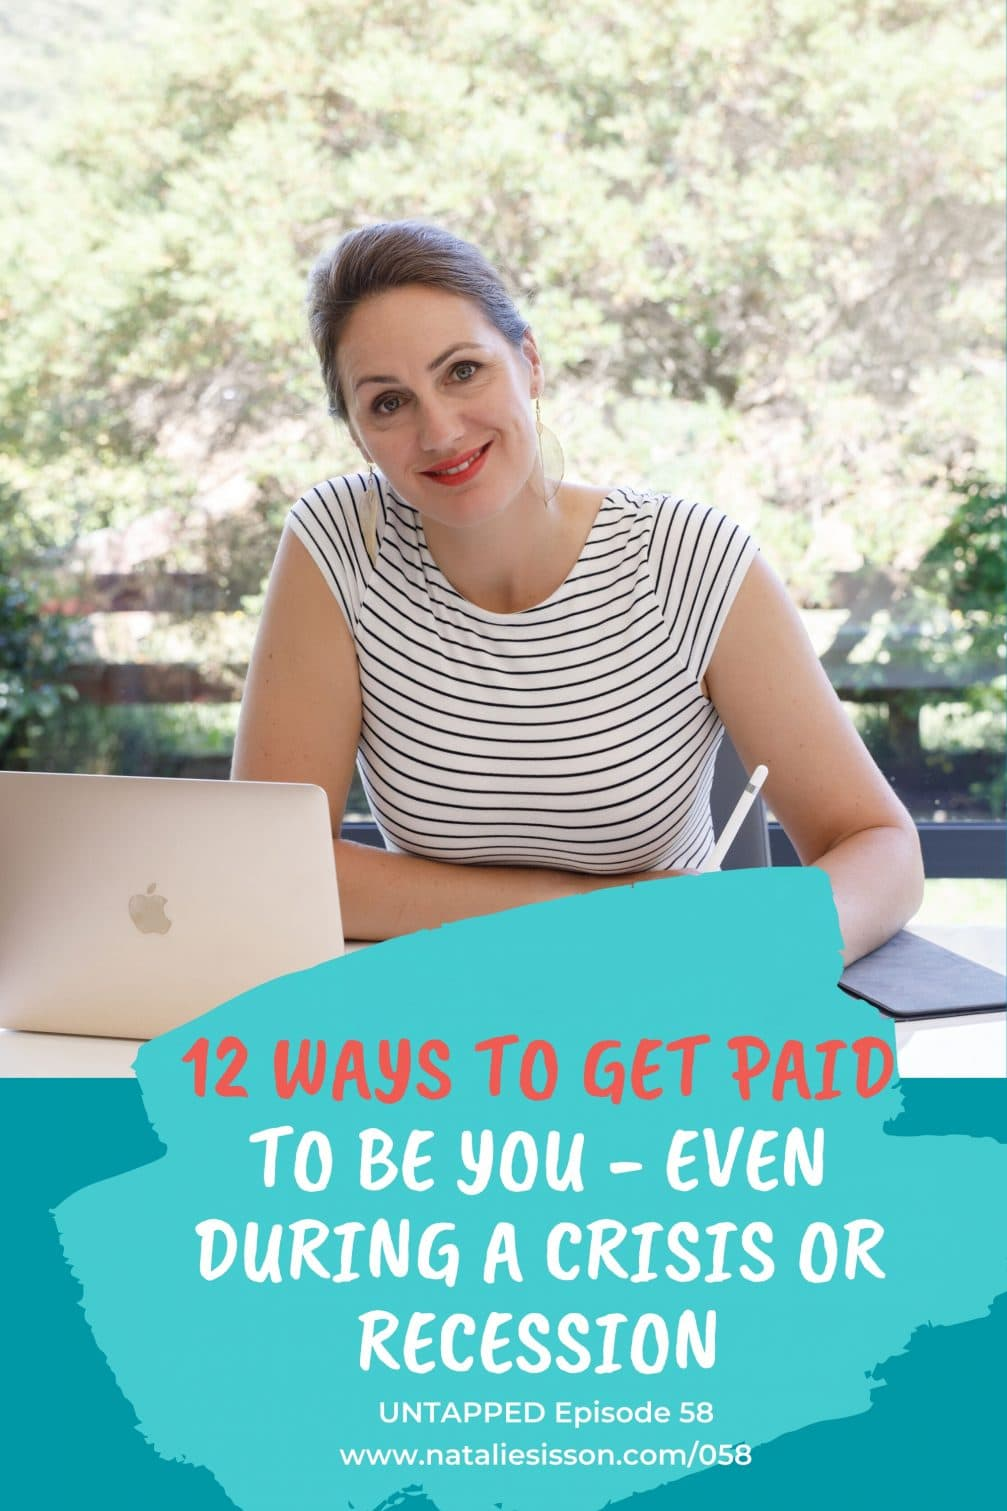 12 Ways To Get Paid To Be You - Even During A Crisis or Recession